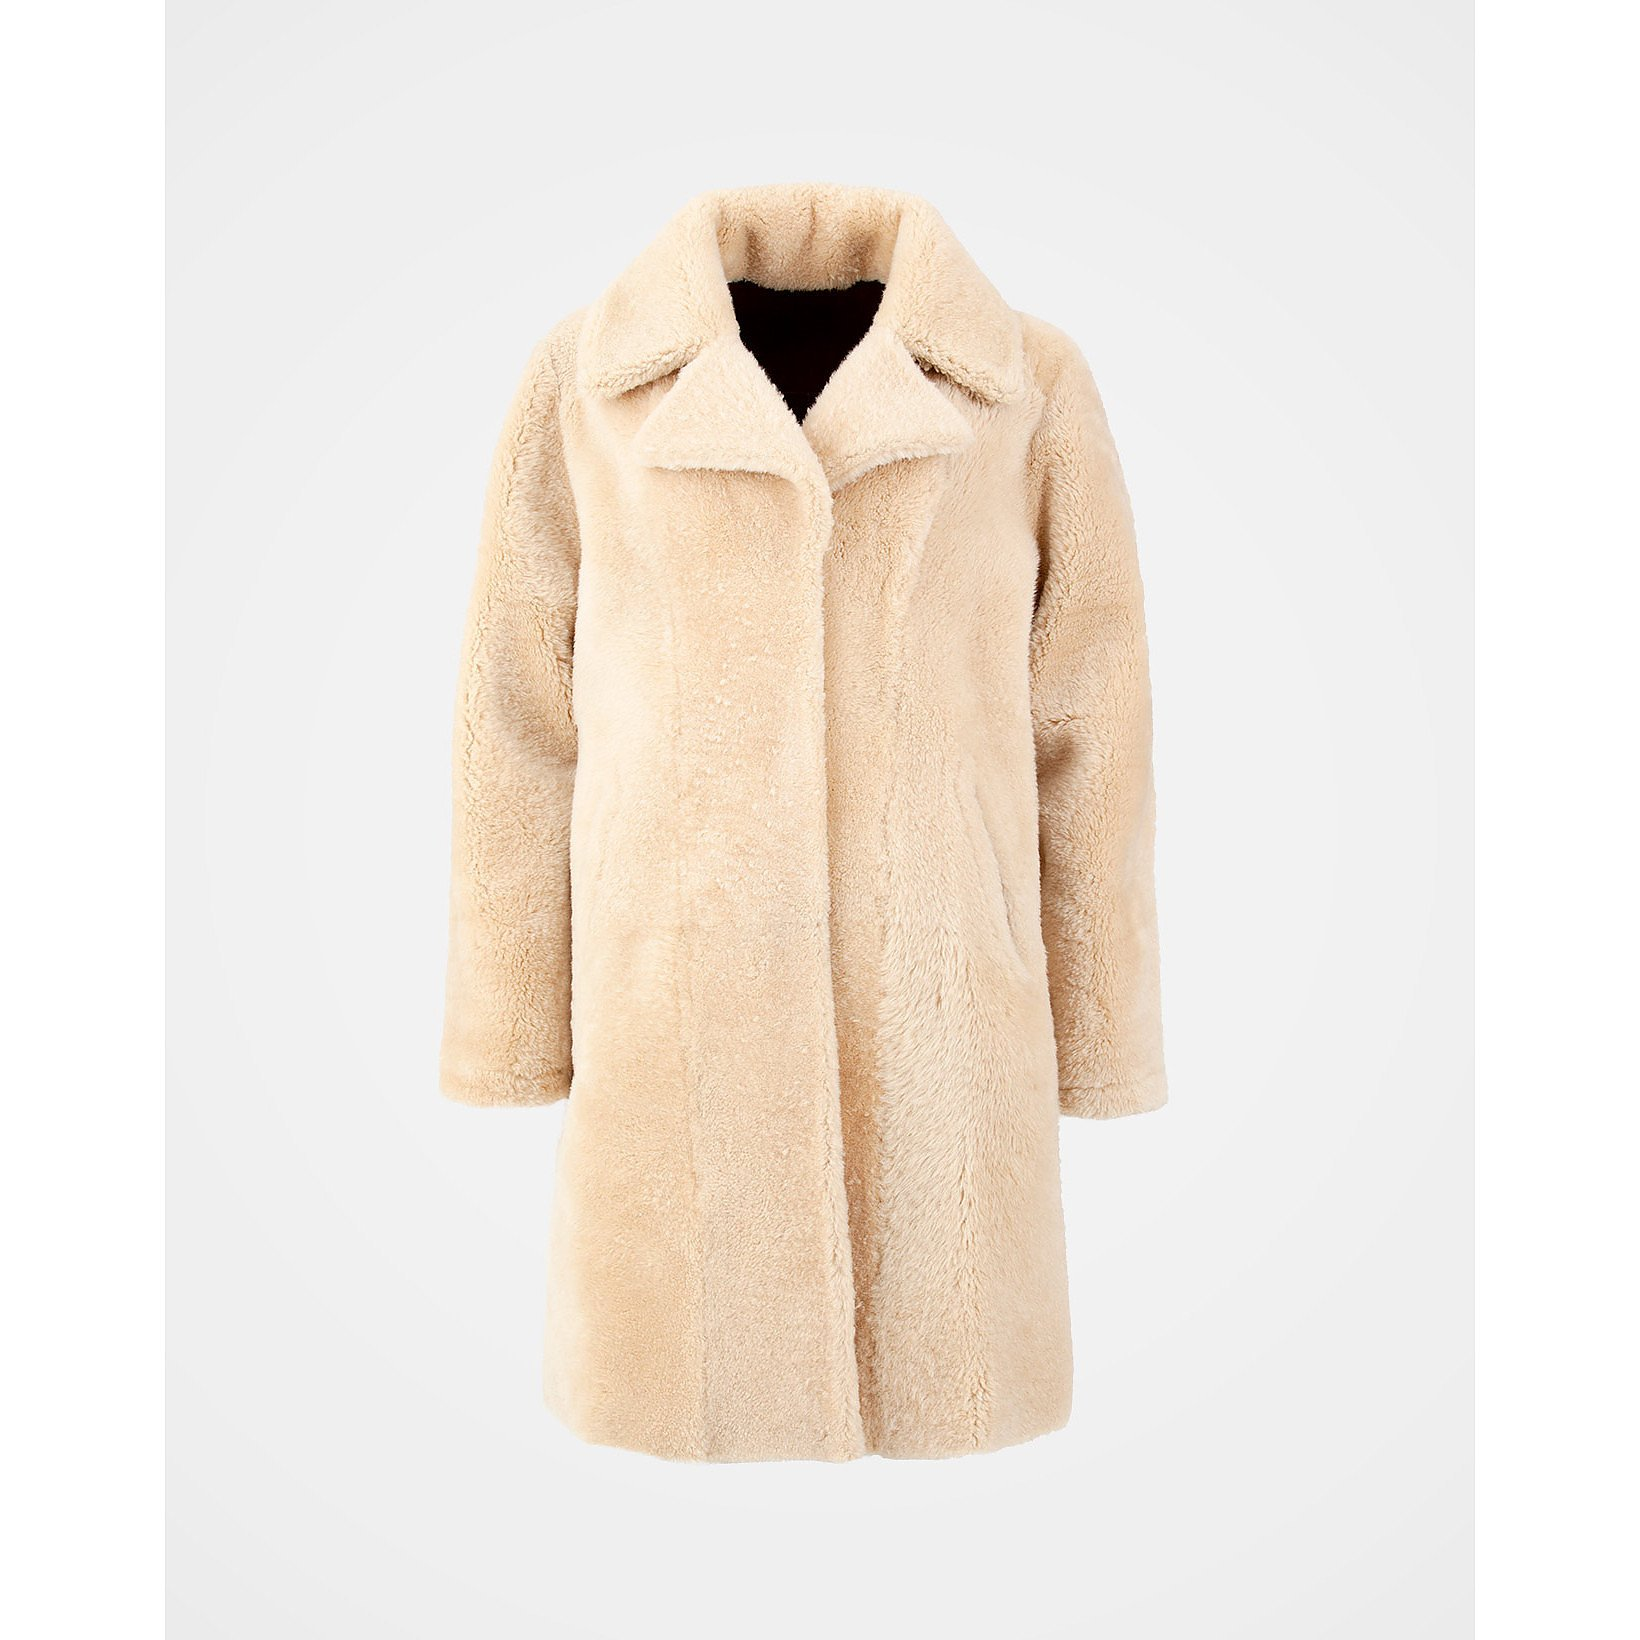 Celtic and Co Reversible Teddy Coat